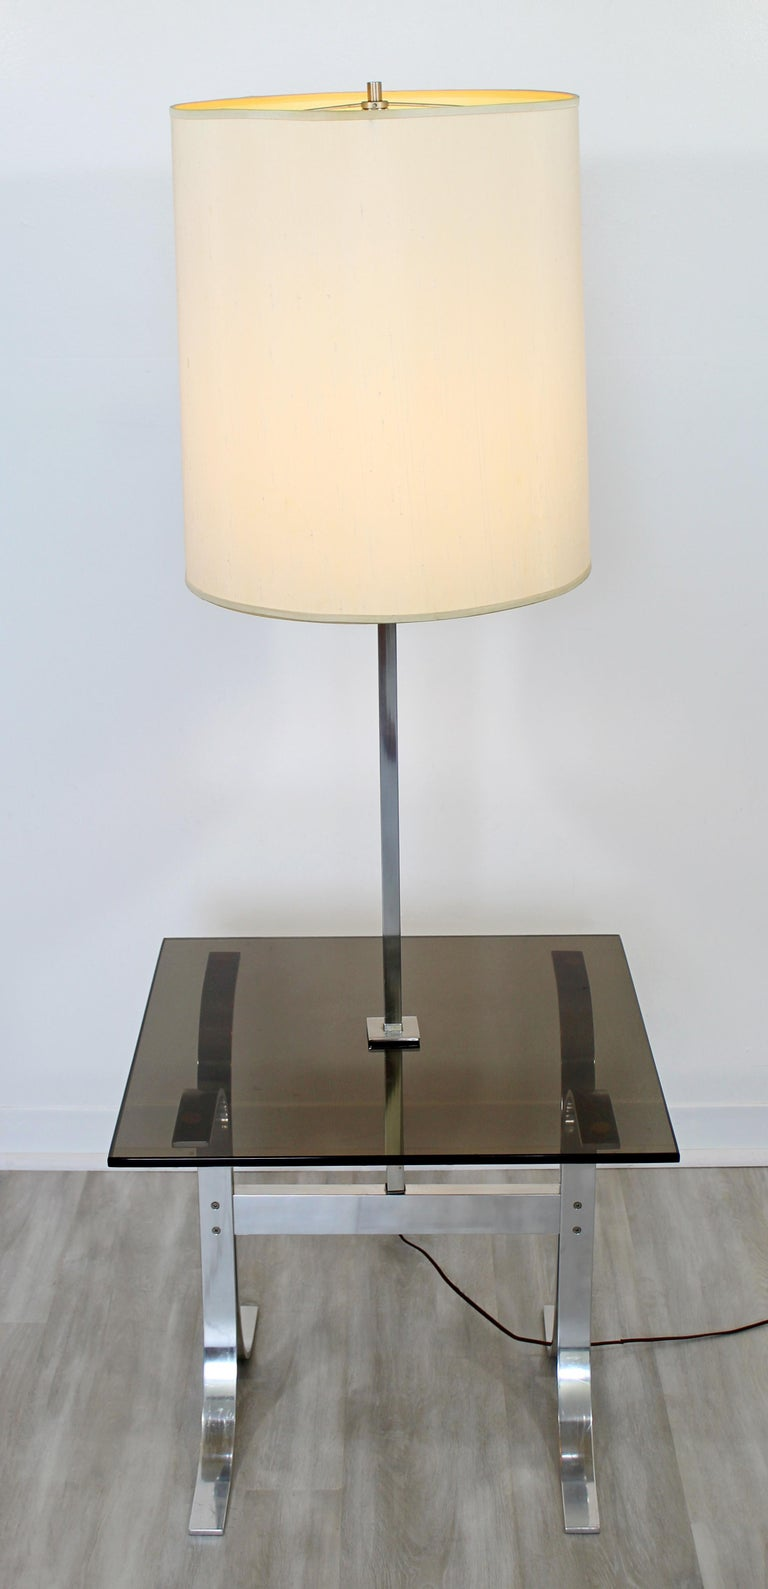 American Mid-Century Modern Chrome Smoked Glass Floor Lamp Table Laurel, 1970s For Sale